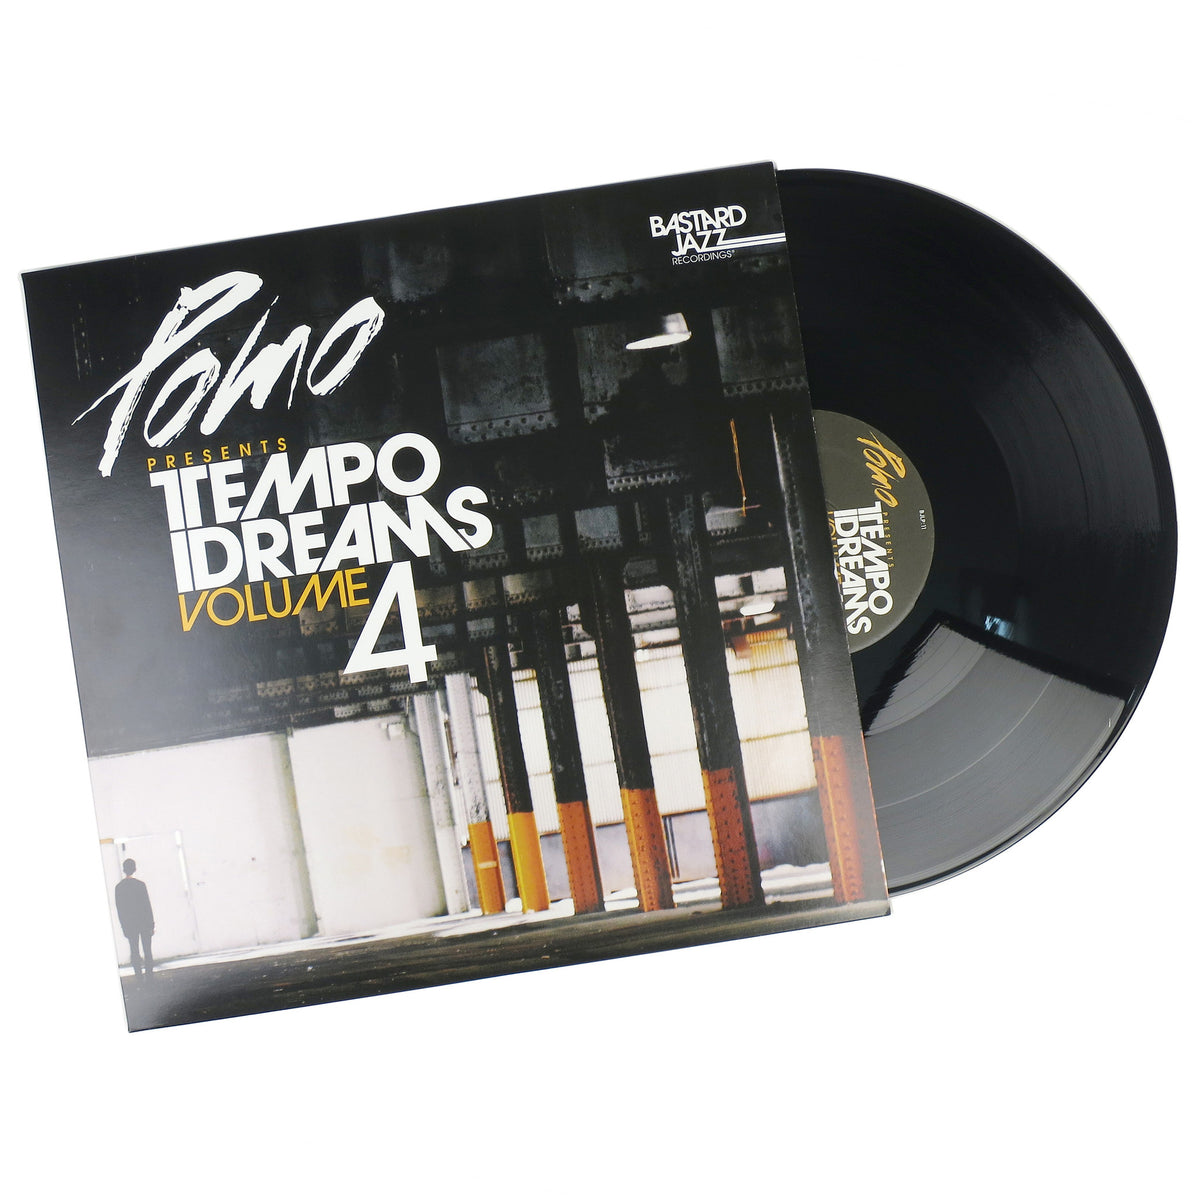 Pomo Presents Tempo Dreams Vol.4 Vinyl